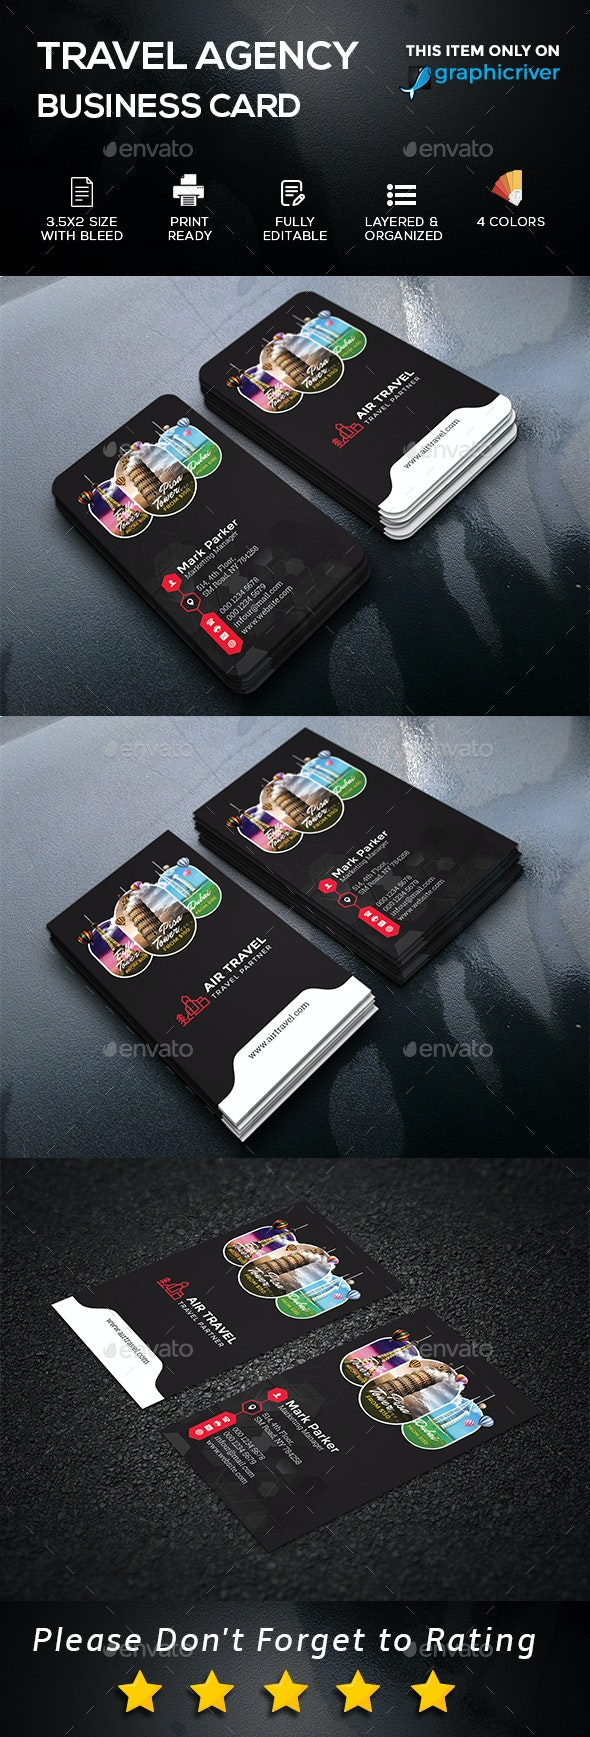 Travel Agency Business Card - Business Cards Print Templates